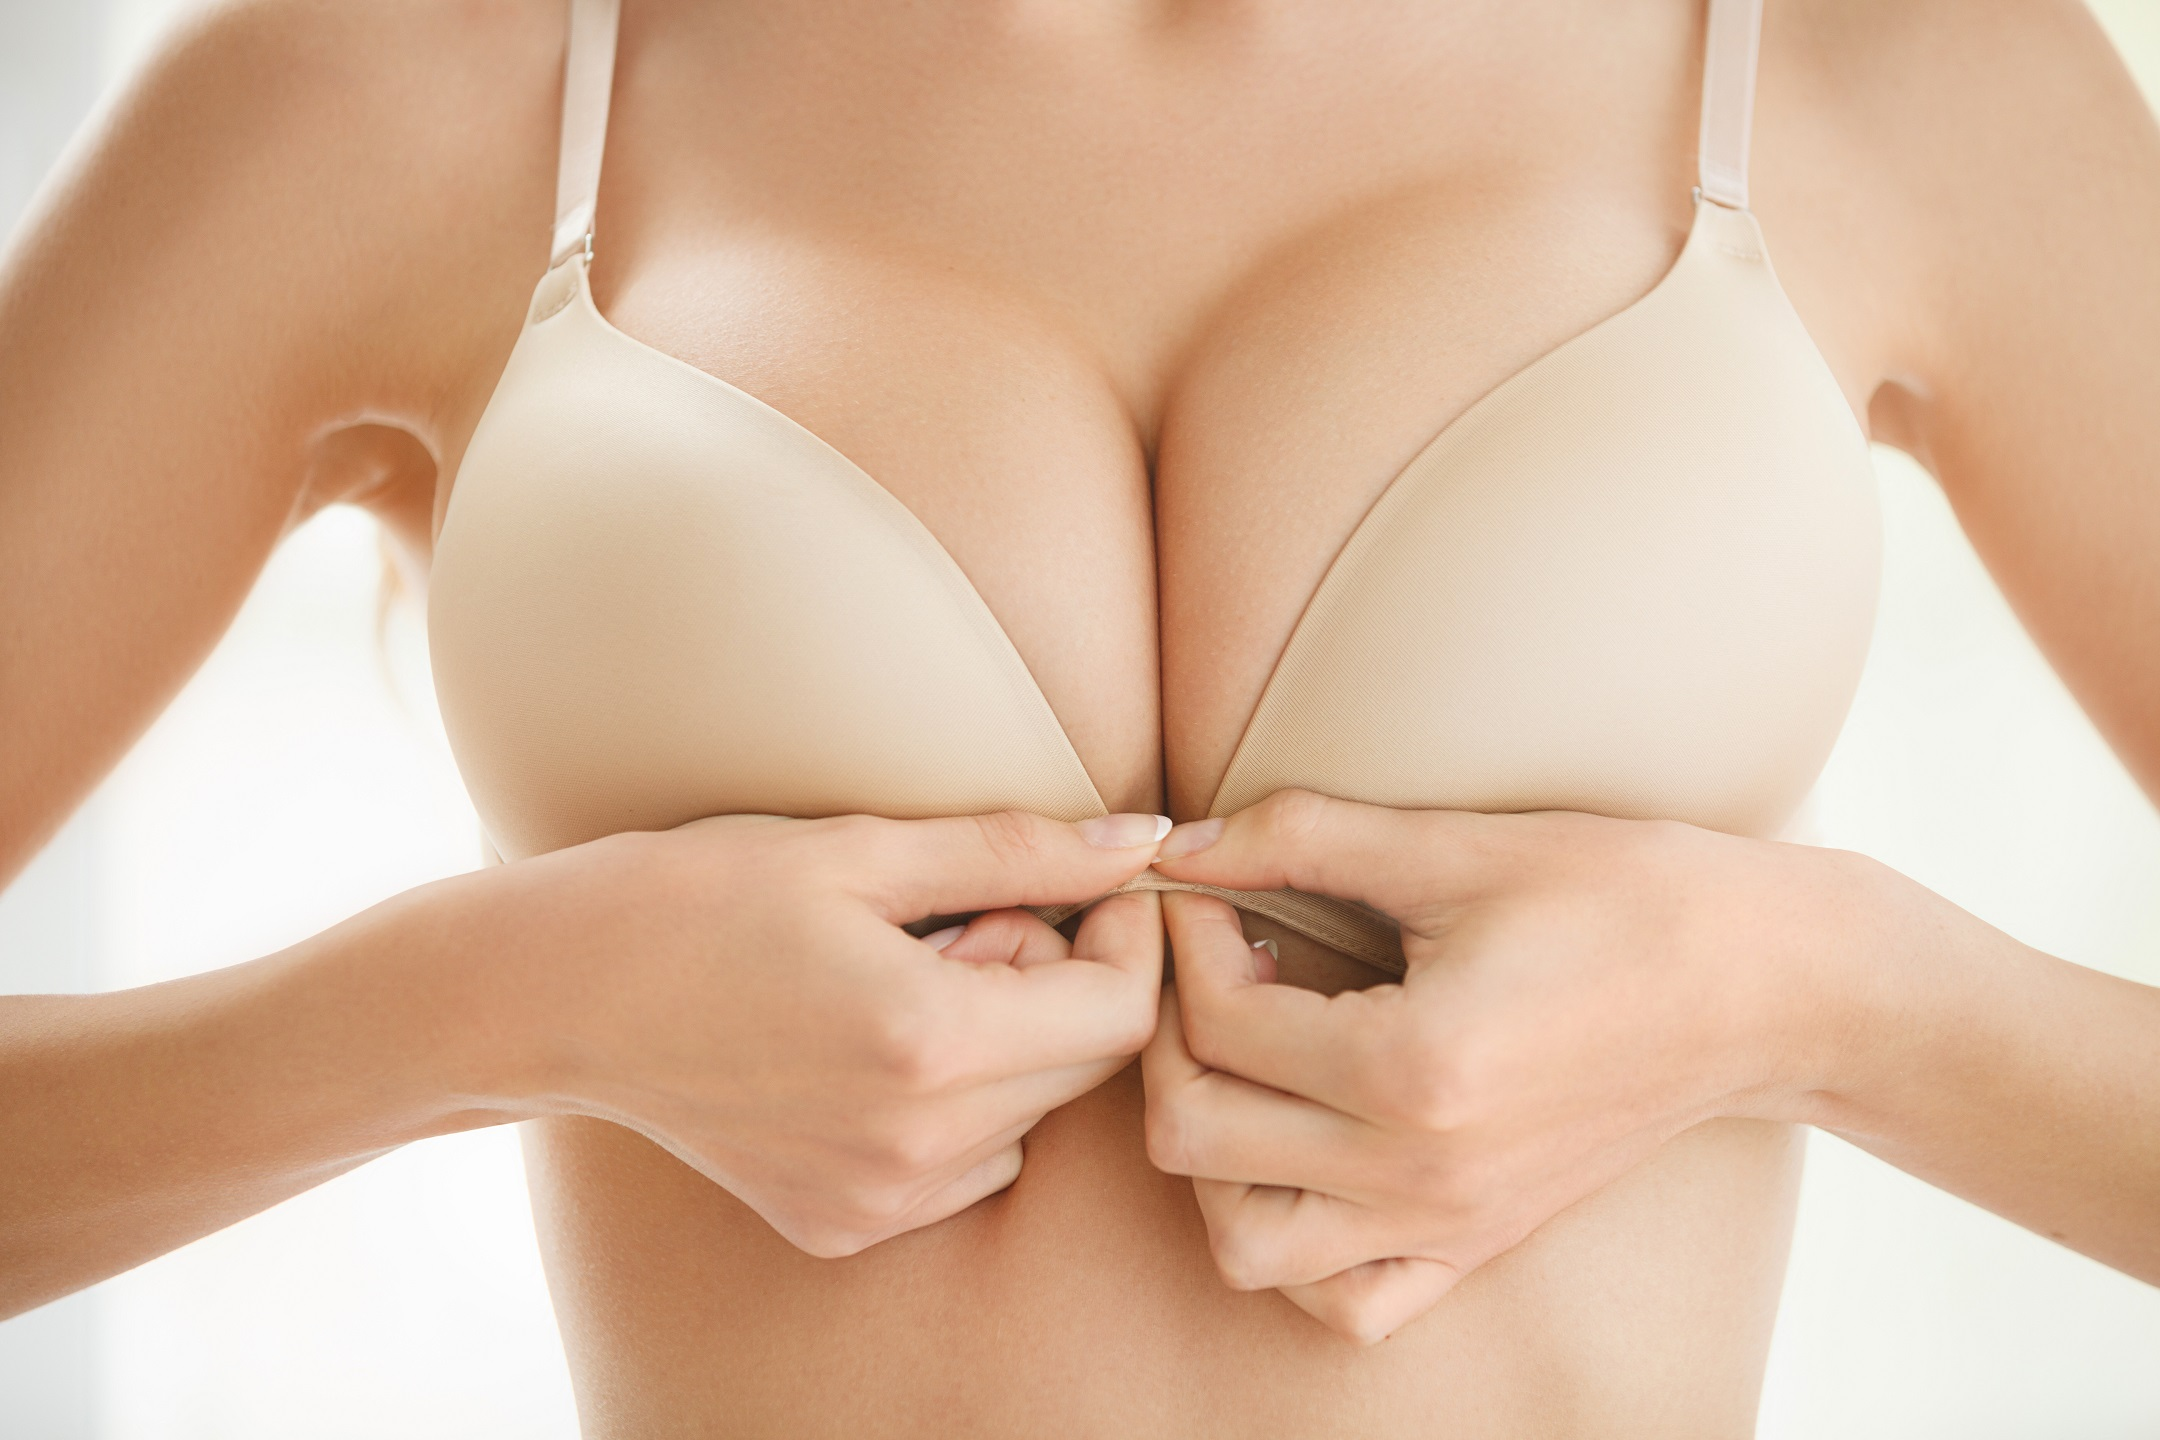 5 Reconstruction Options after Removing Breast Implants